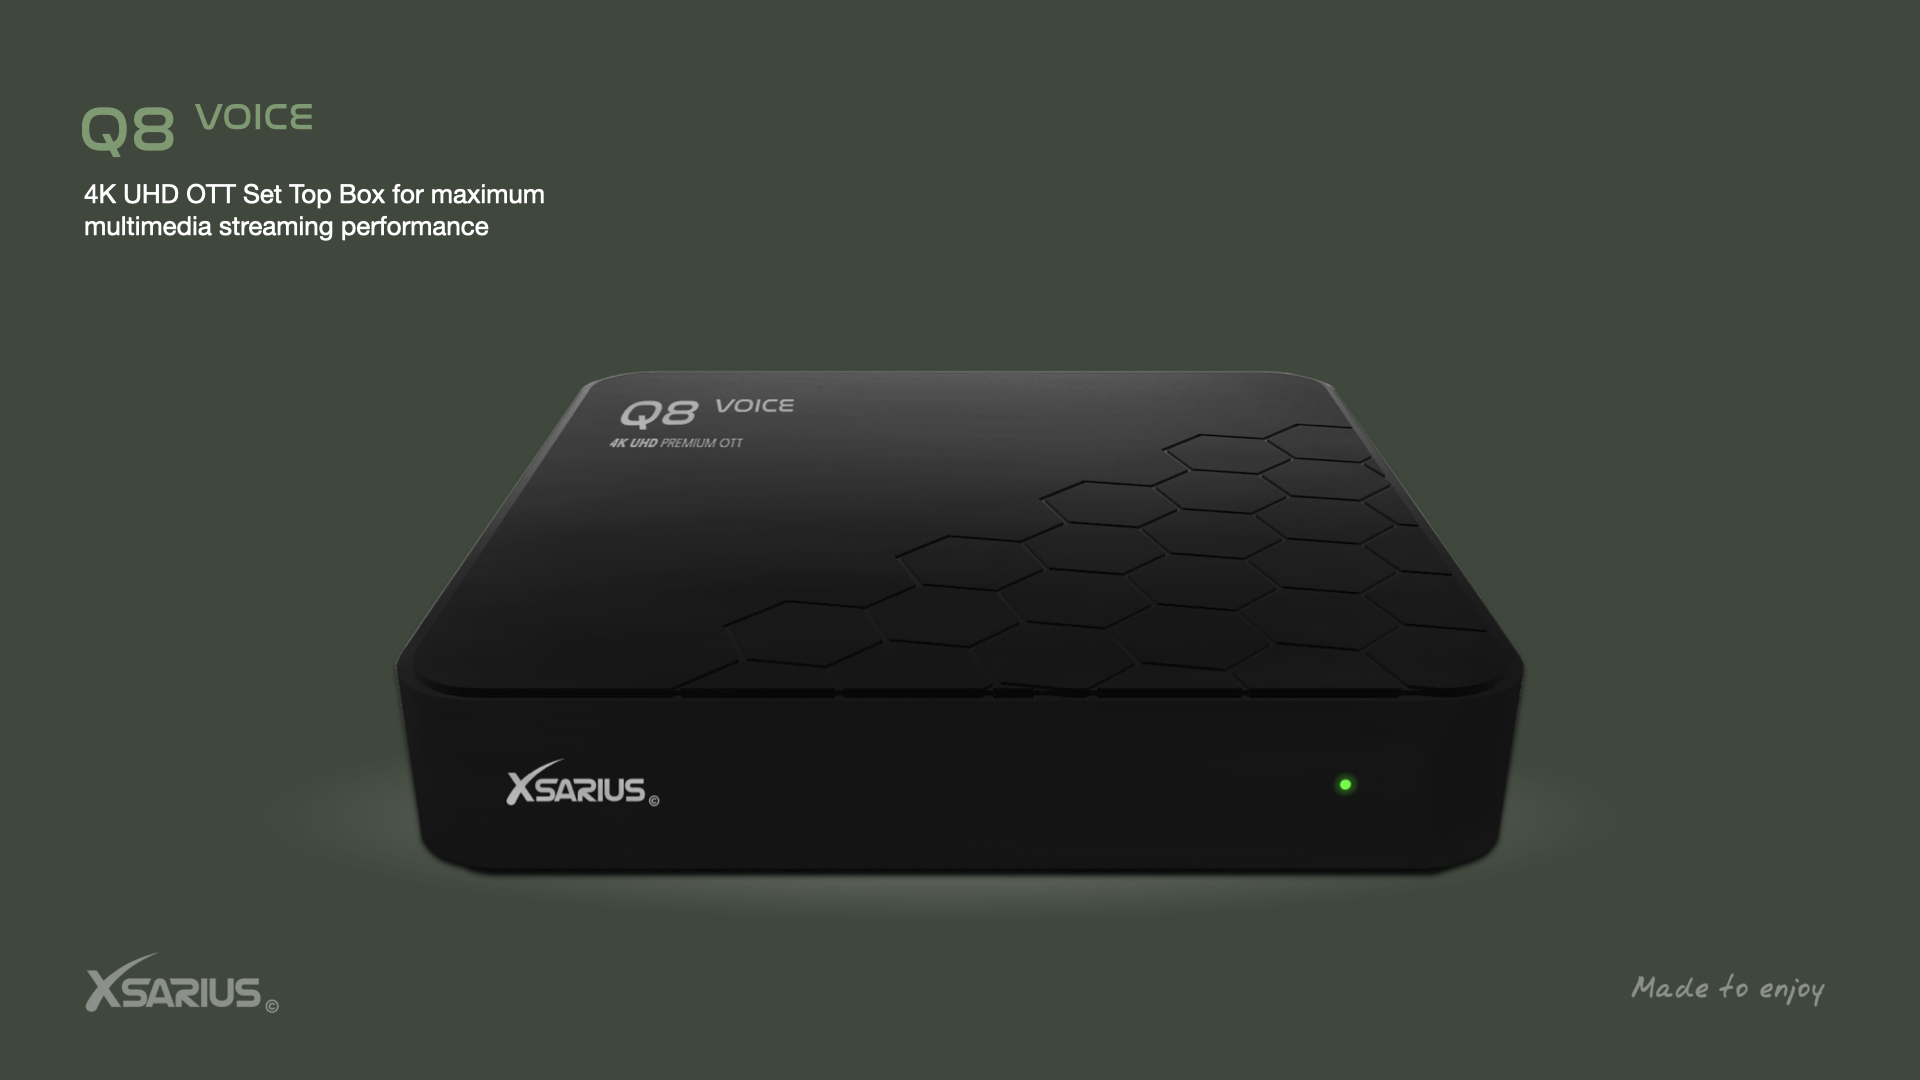 Xsarius Q8 - 4K UHD OTT Smart BOX